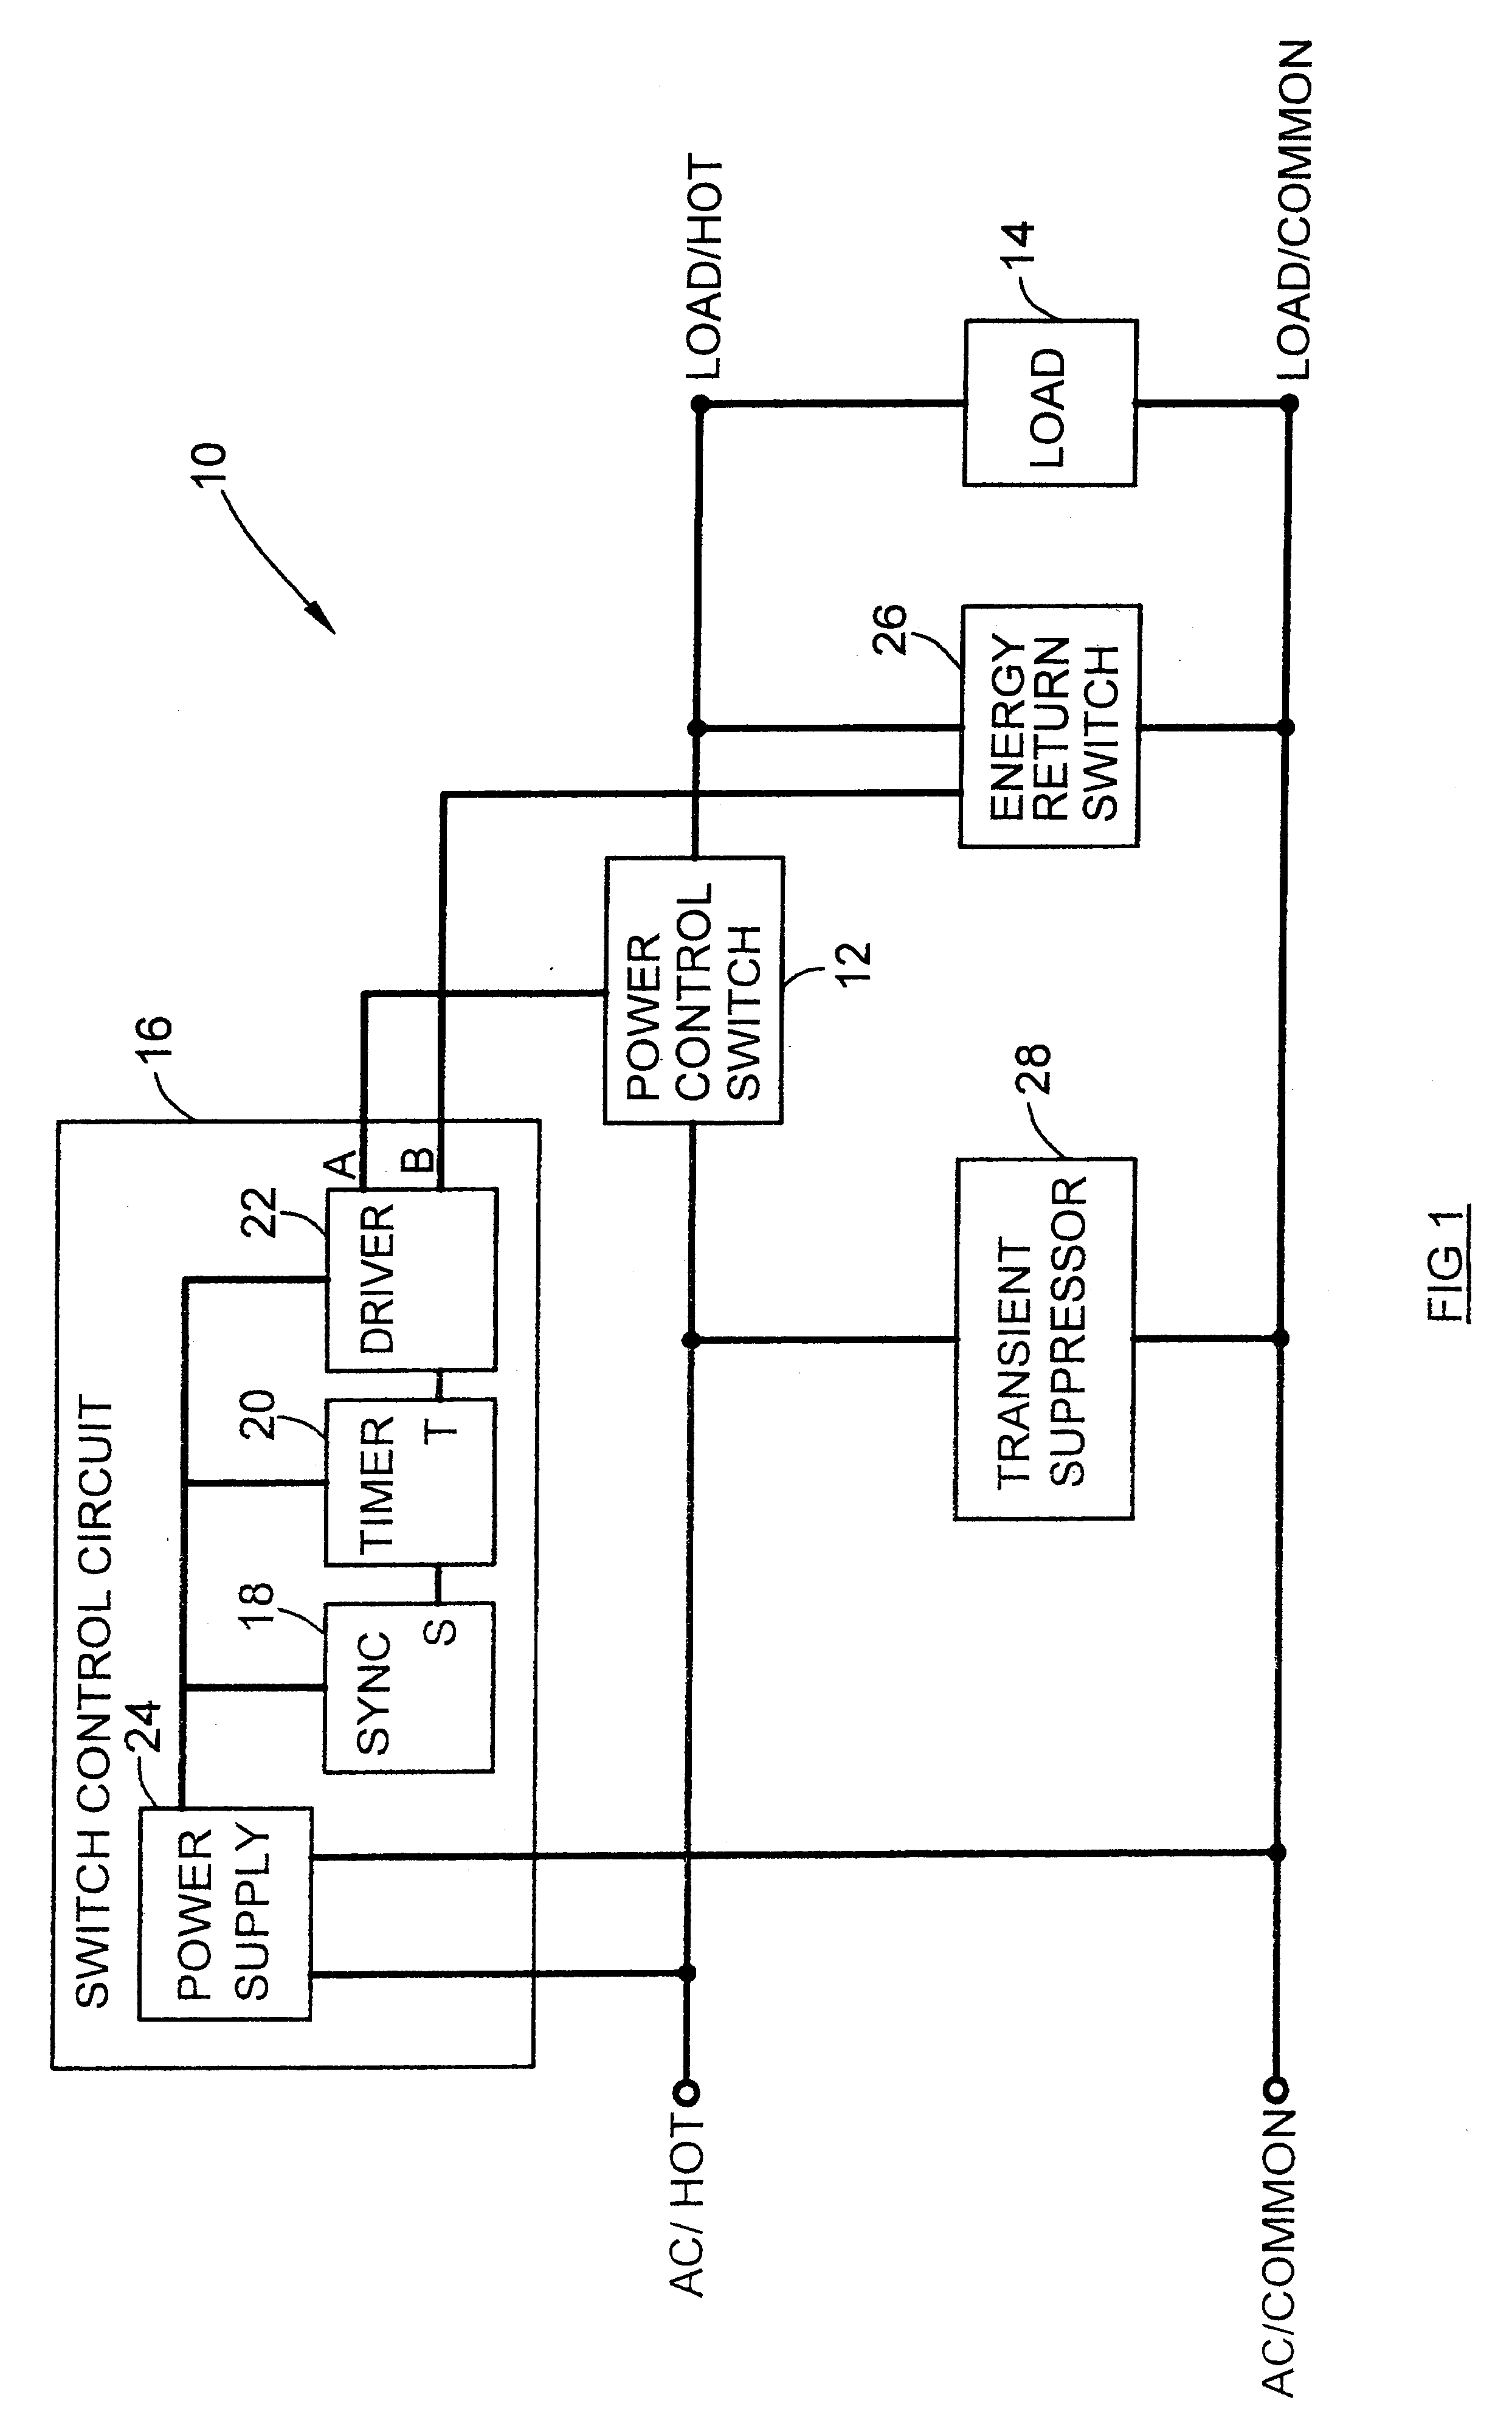 Patent Us6525490 Power Saving Circuitry Google Patentsuche Related Circuits Scr Pulse Detection Circuit Using 555 Based Drawing